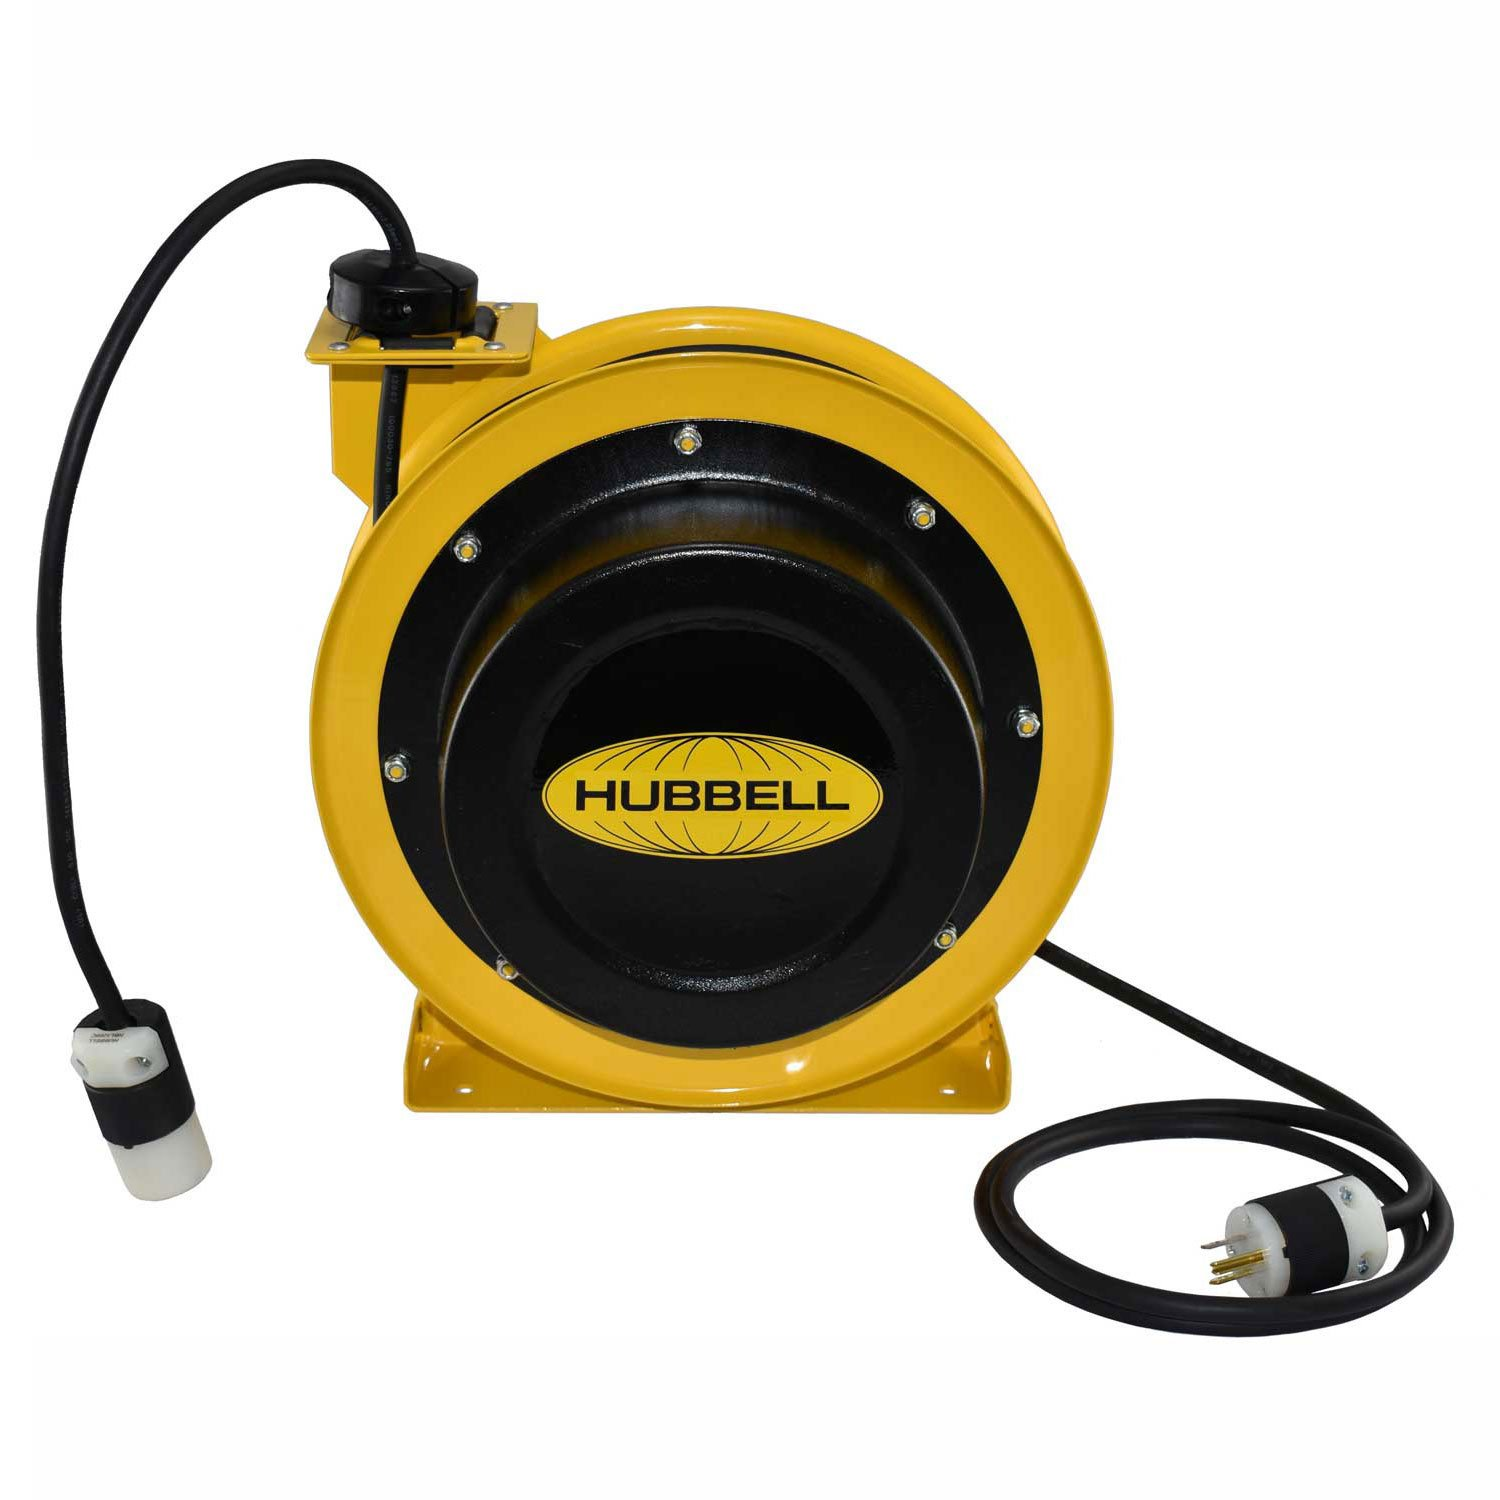 Hubbell Gleason Industrial Duty Cord Reel with Single Outlet, 14/3c x 25' Cable, GCA14325-SR